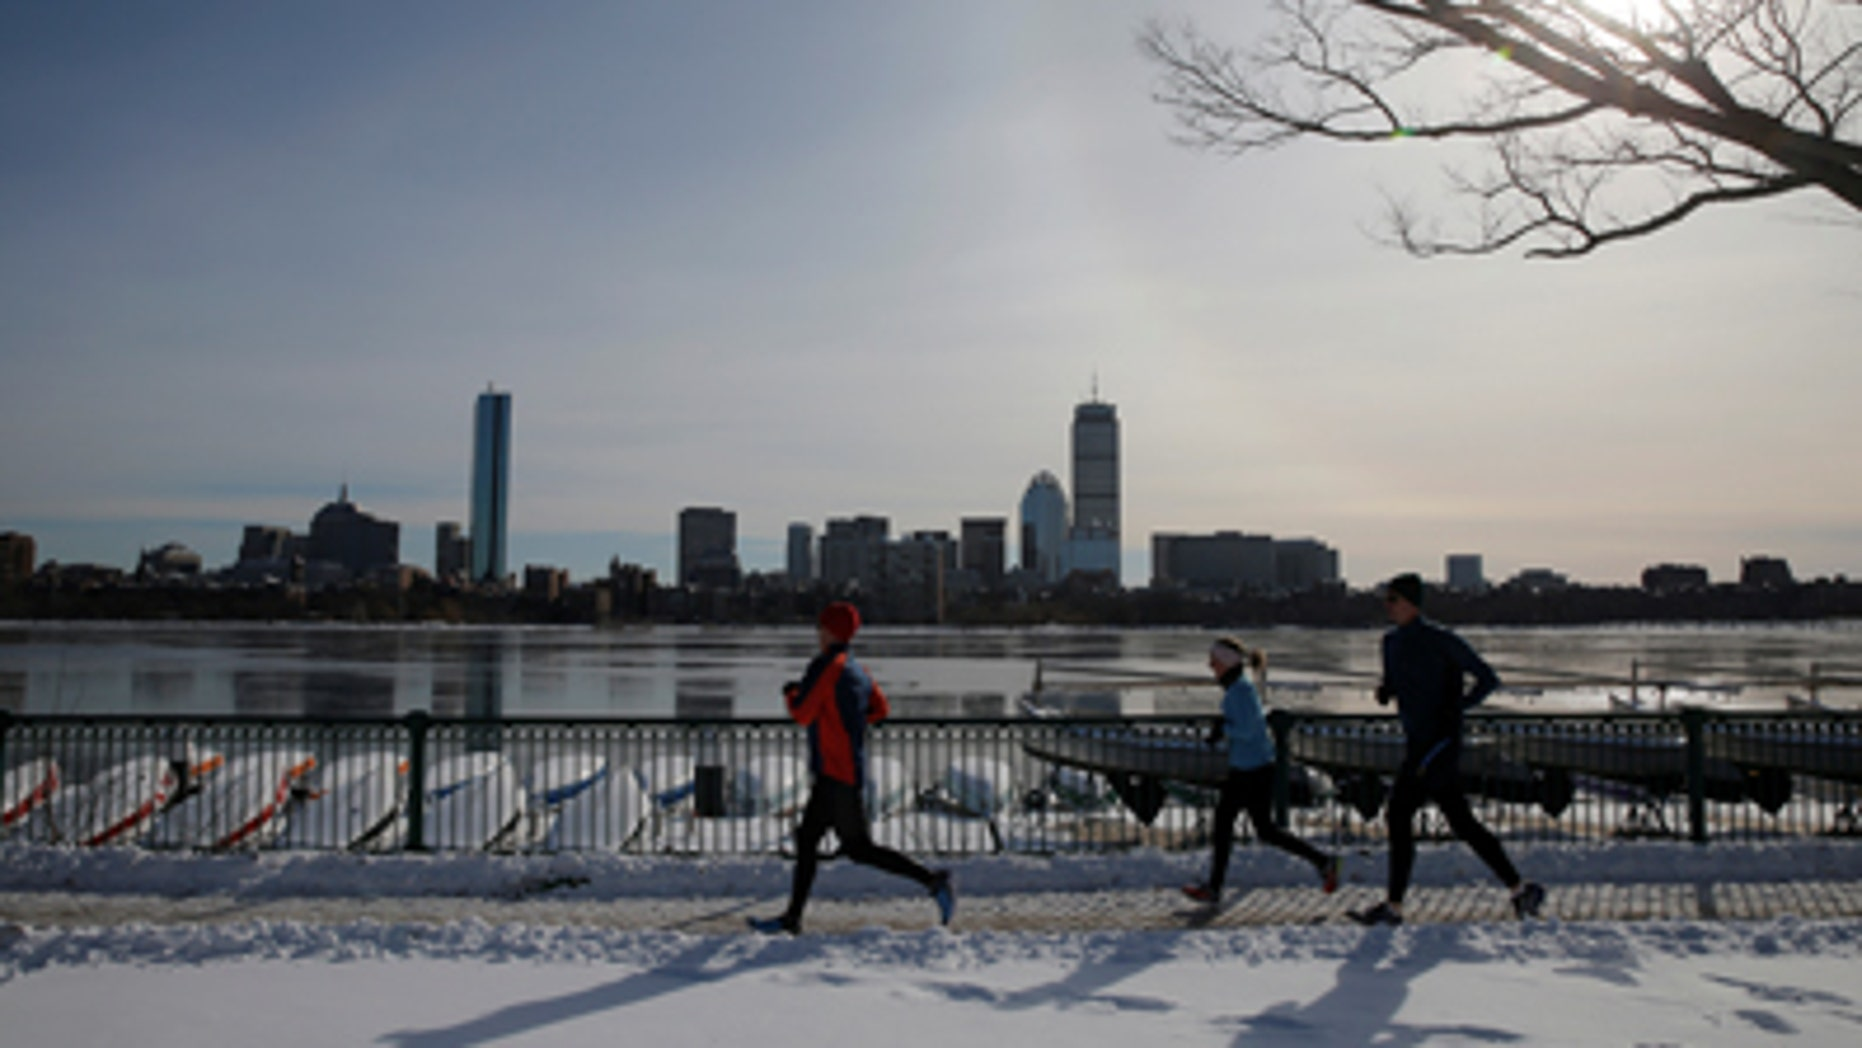 Joggers run along the Charles River past the Boston skyline on a sunny winter's day in Cambridge, Massachusetts, U.S. January 9, 2017. REUTERS/Brian Snyder - RTX2Y72G